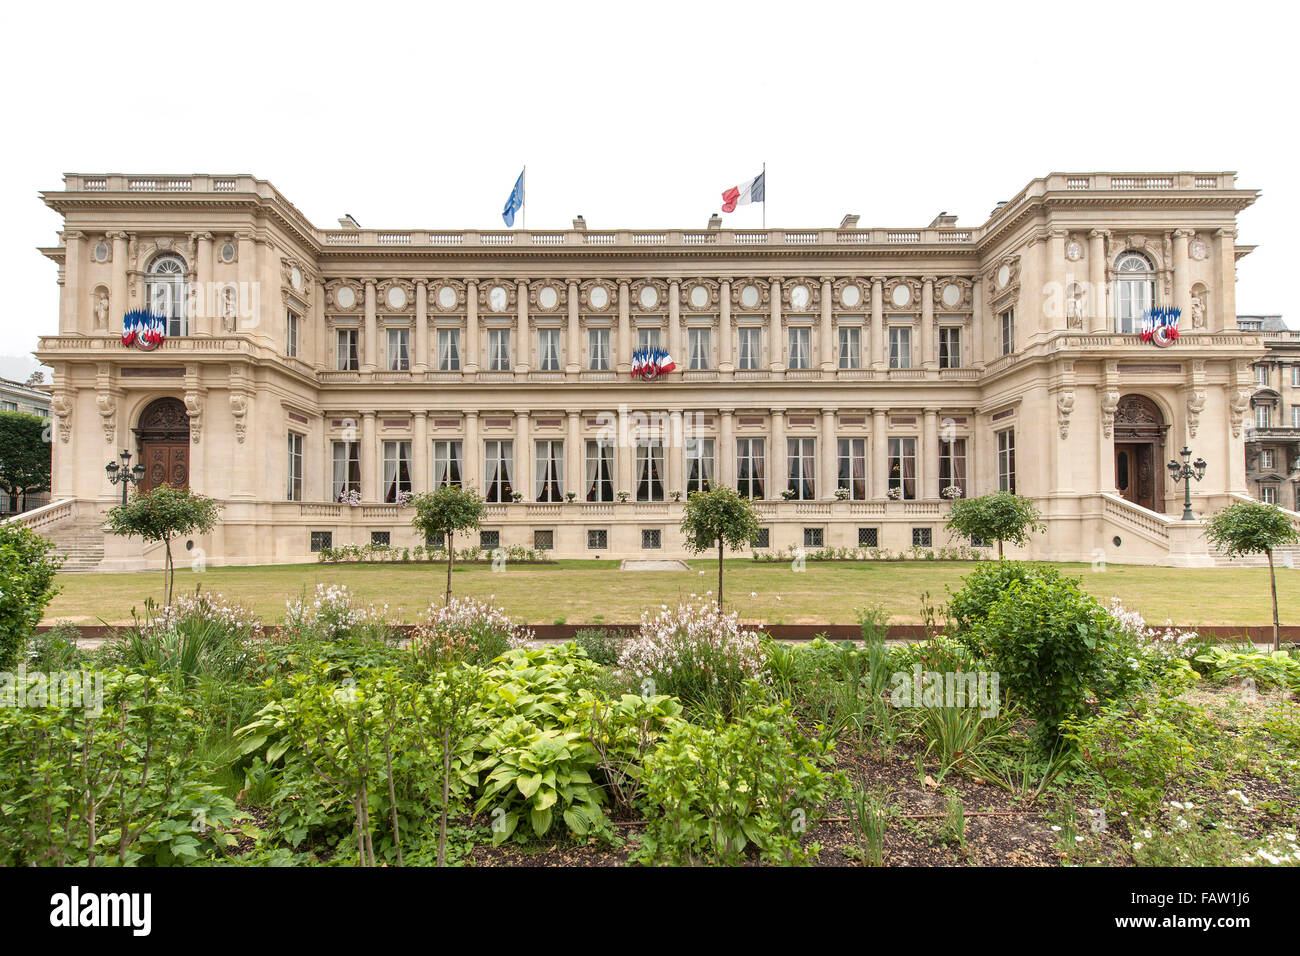 Ministry of Foreign Affairs building in Paris. - Stock Image